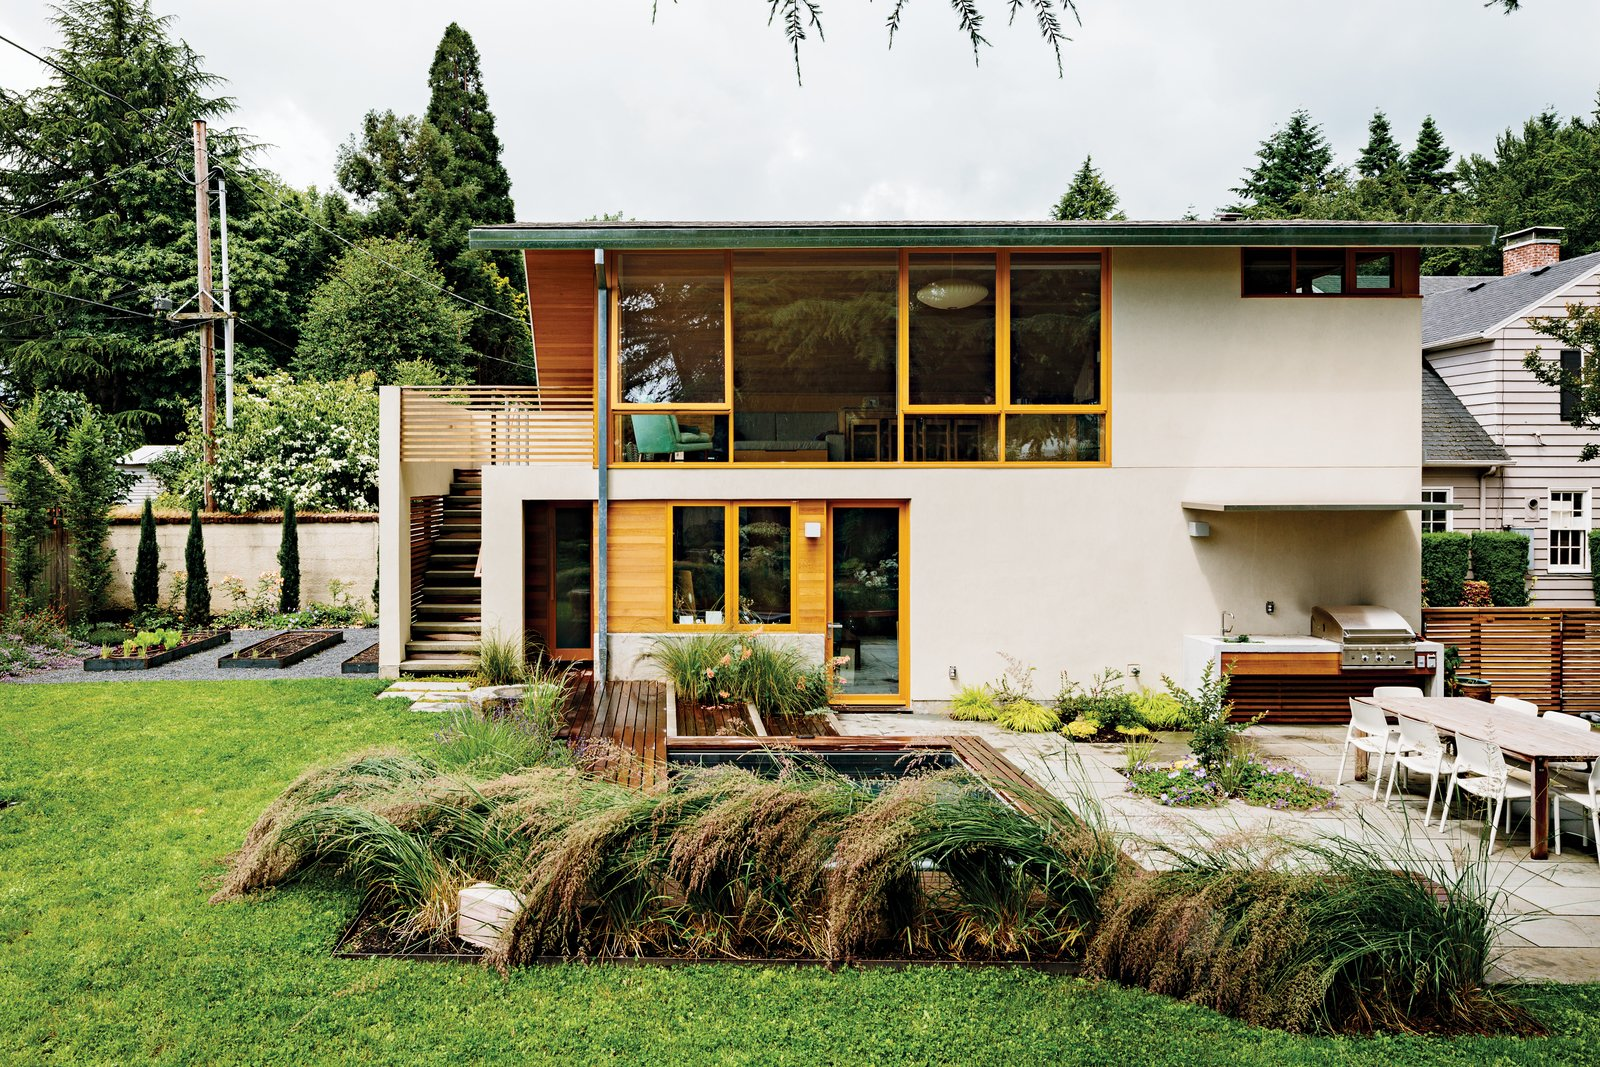 Articles about few our favorite european beach houses on Dwell.com